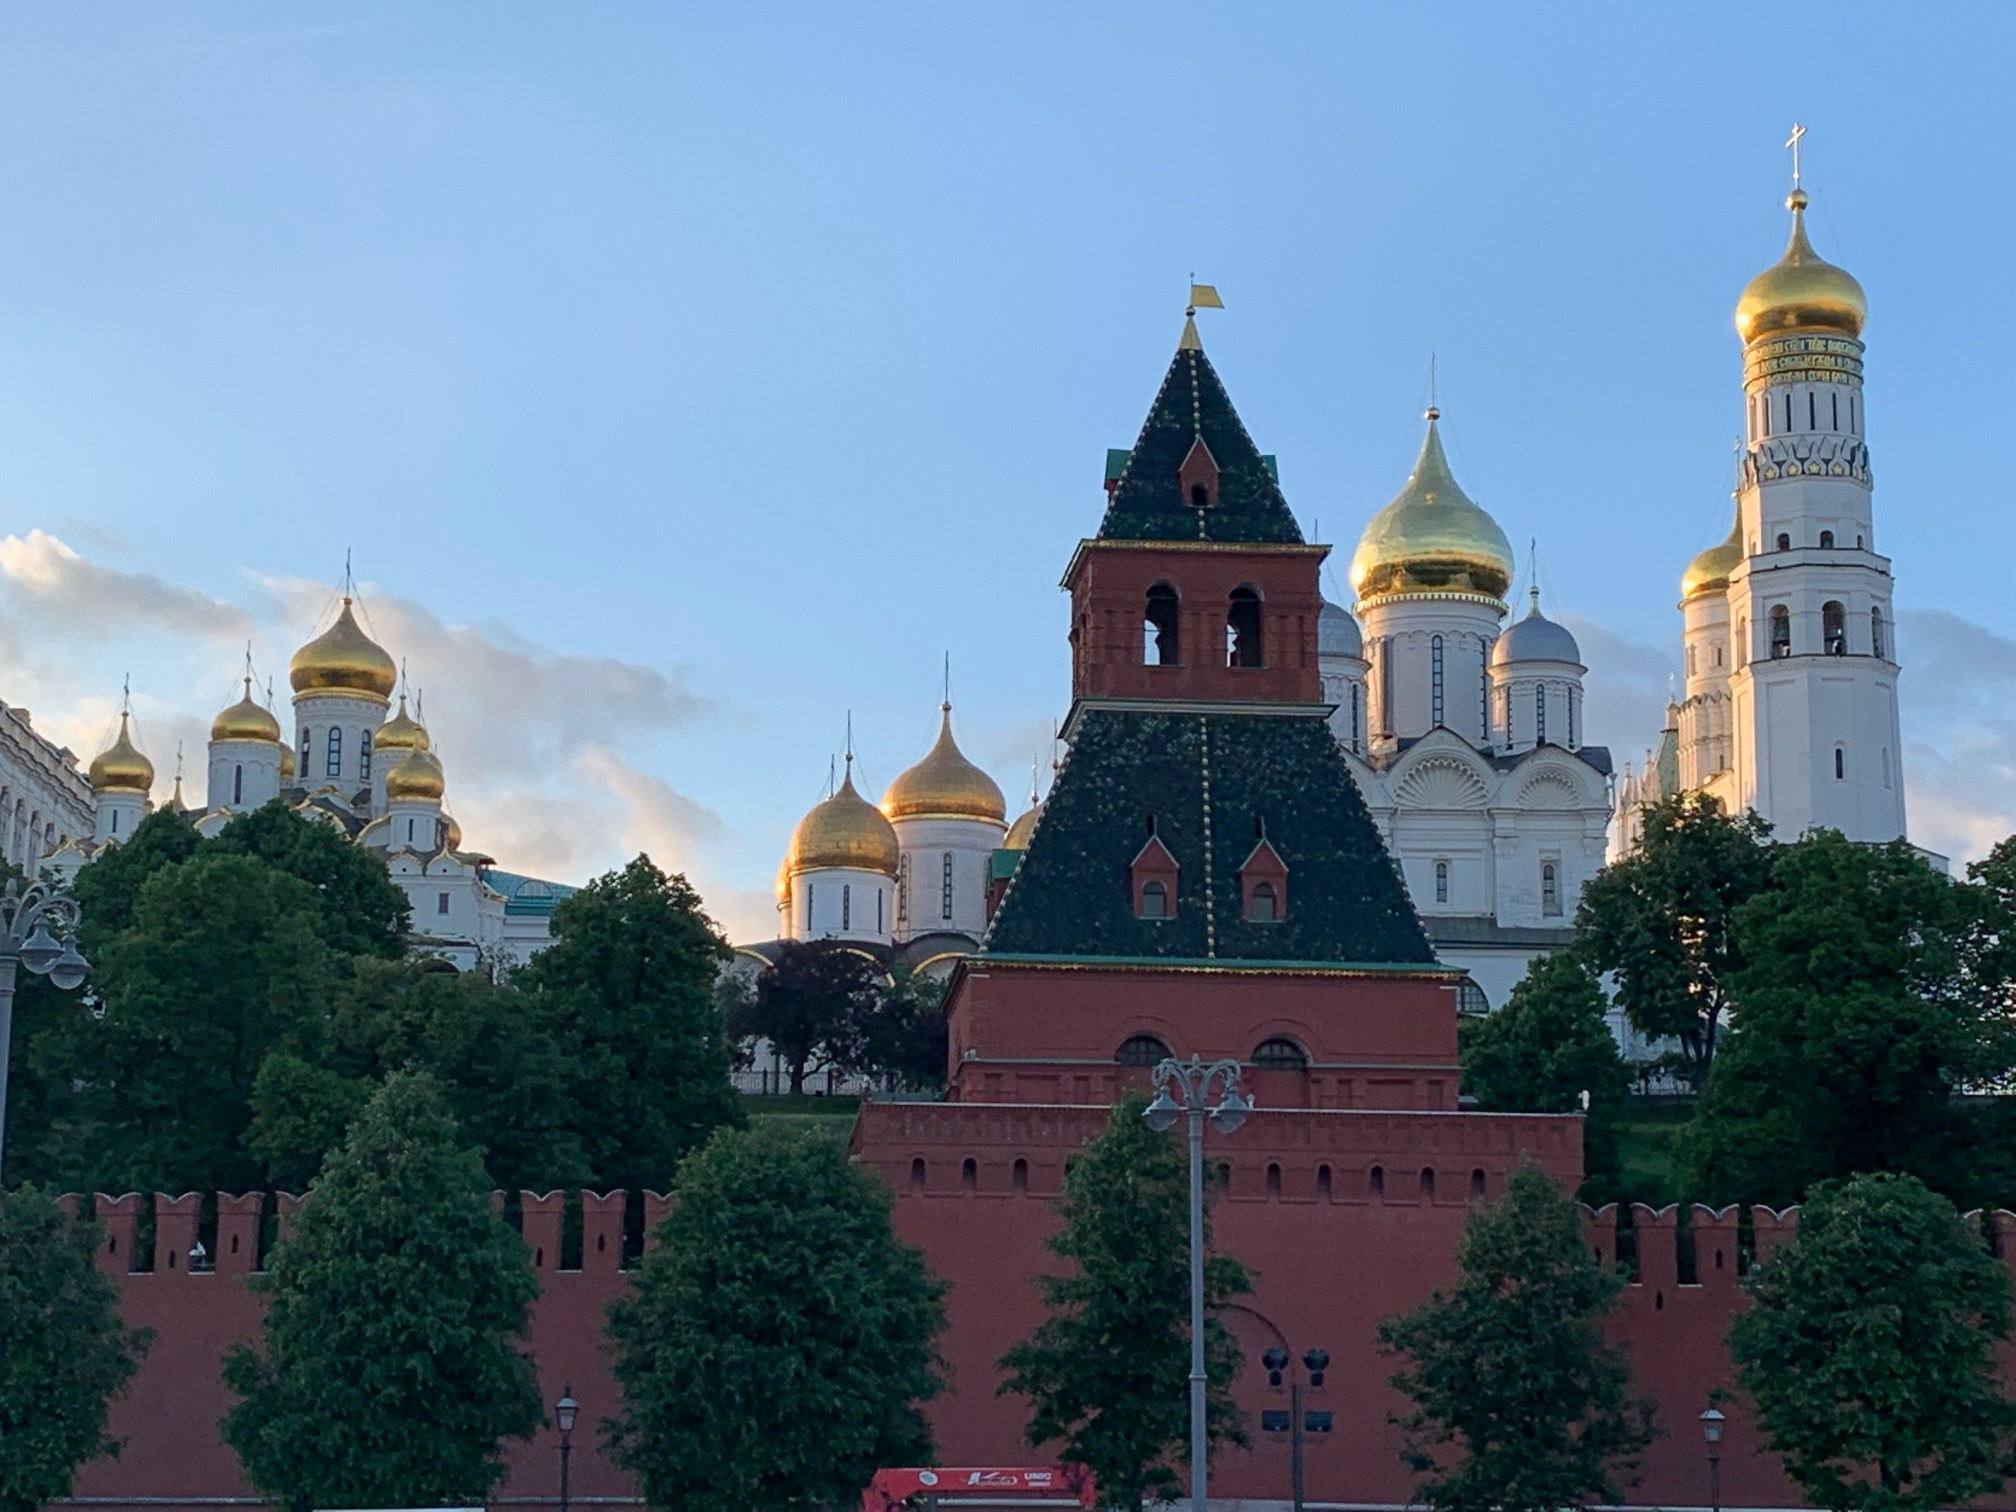 A scenic view of Moscow, Russia, includes one of the Kremlin's many towers and the domes of Russian Orthodox cathedrals. Elder Ronald A. Rasband visited the Europe East Area from May 22 to June 3, 2019.